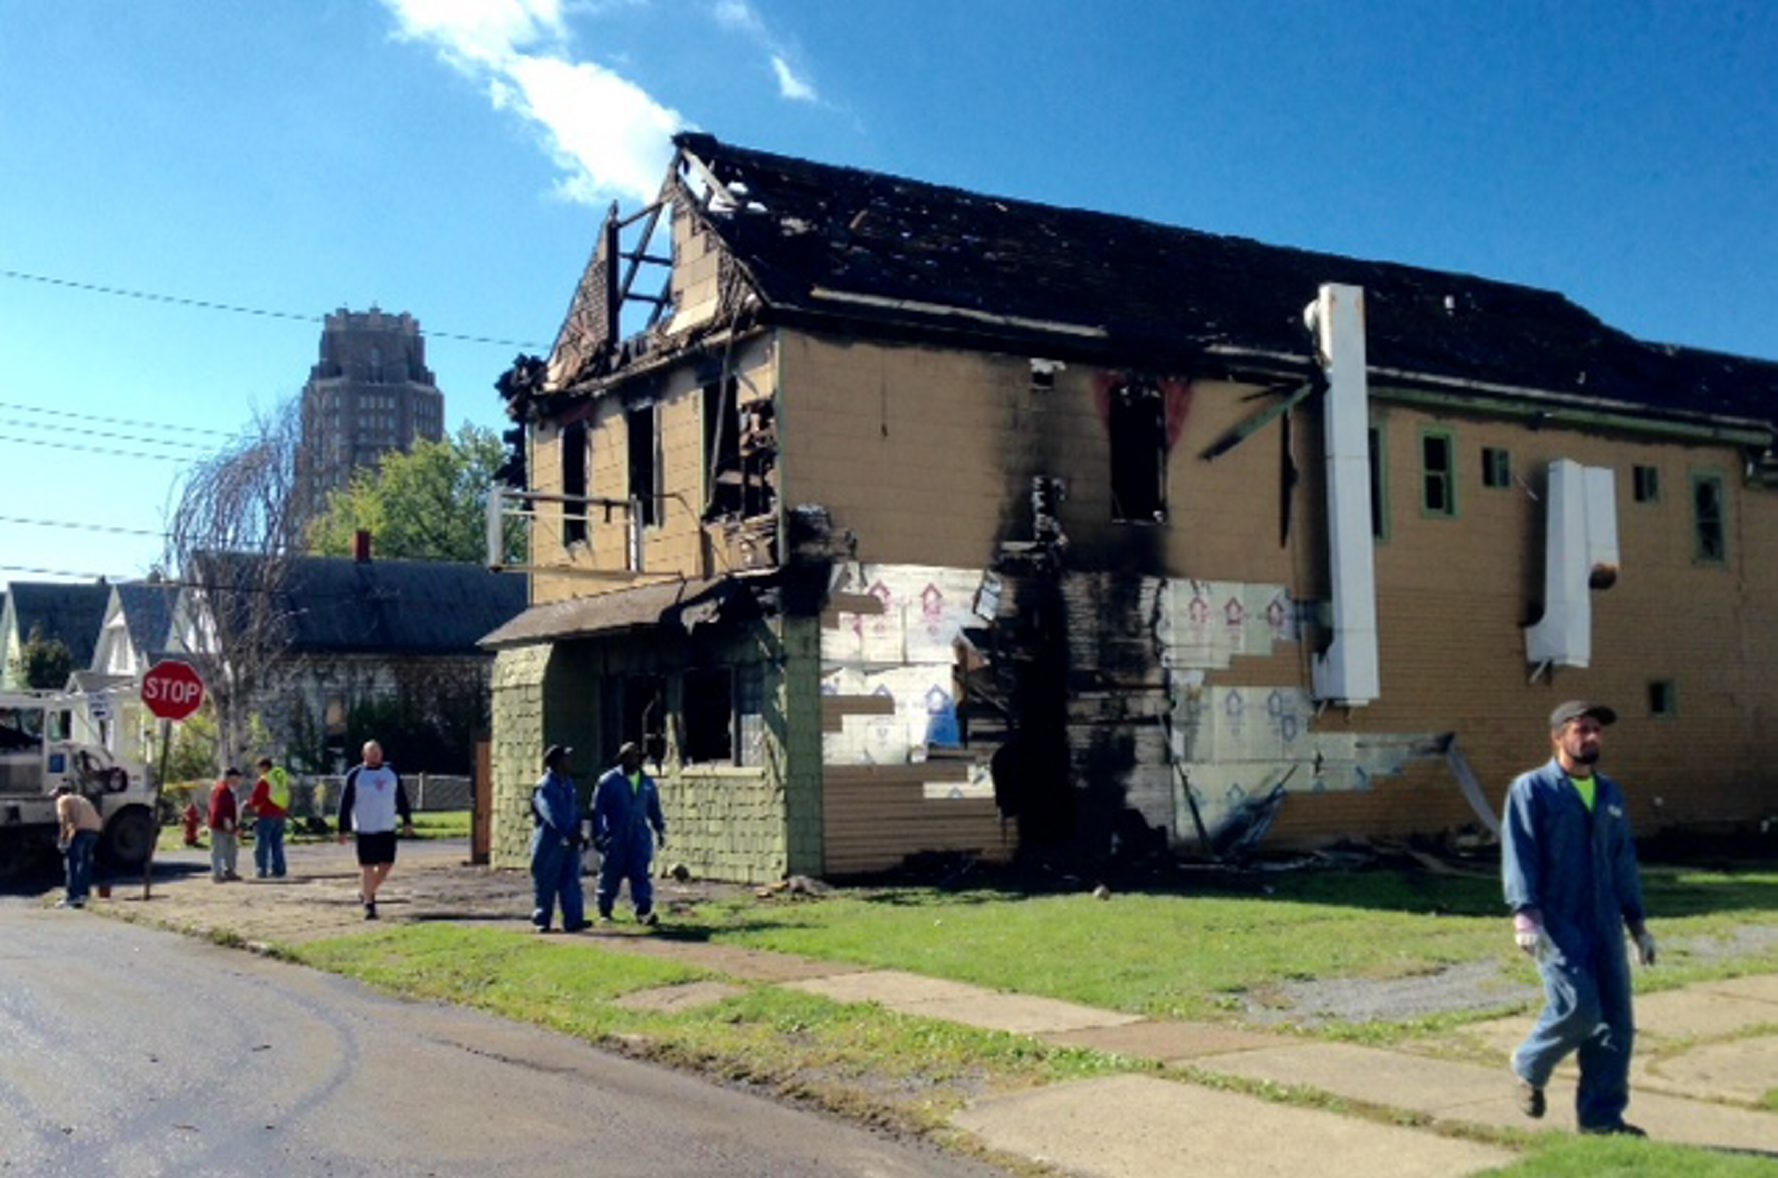 The charred remains were all that remained of this 2½-story rooming house at 392 Curtiss St. after it was engulfed in flames early Saturday morning. Two residents died in the swift-moving blaze.